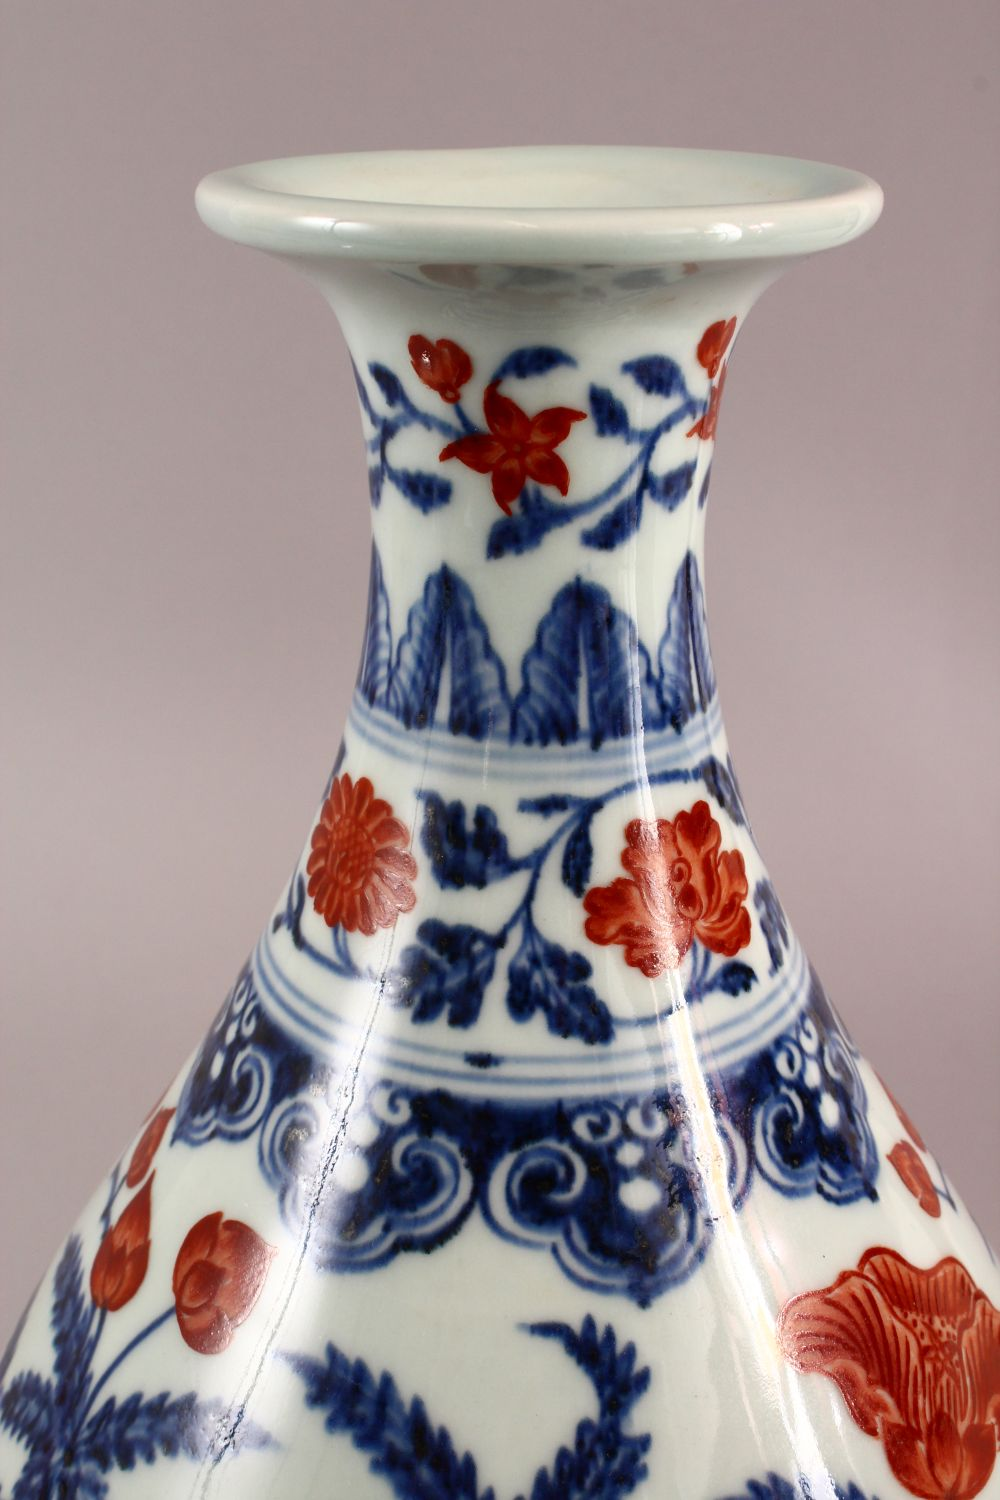 A CHINSE UNDEGLAZED BLUE & COPPER RED LOTUS PORCELAIN VASE, the base with a six character mark, 34cm - Image 4 of 7